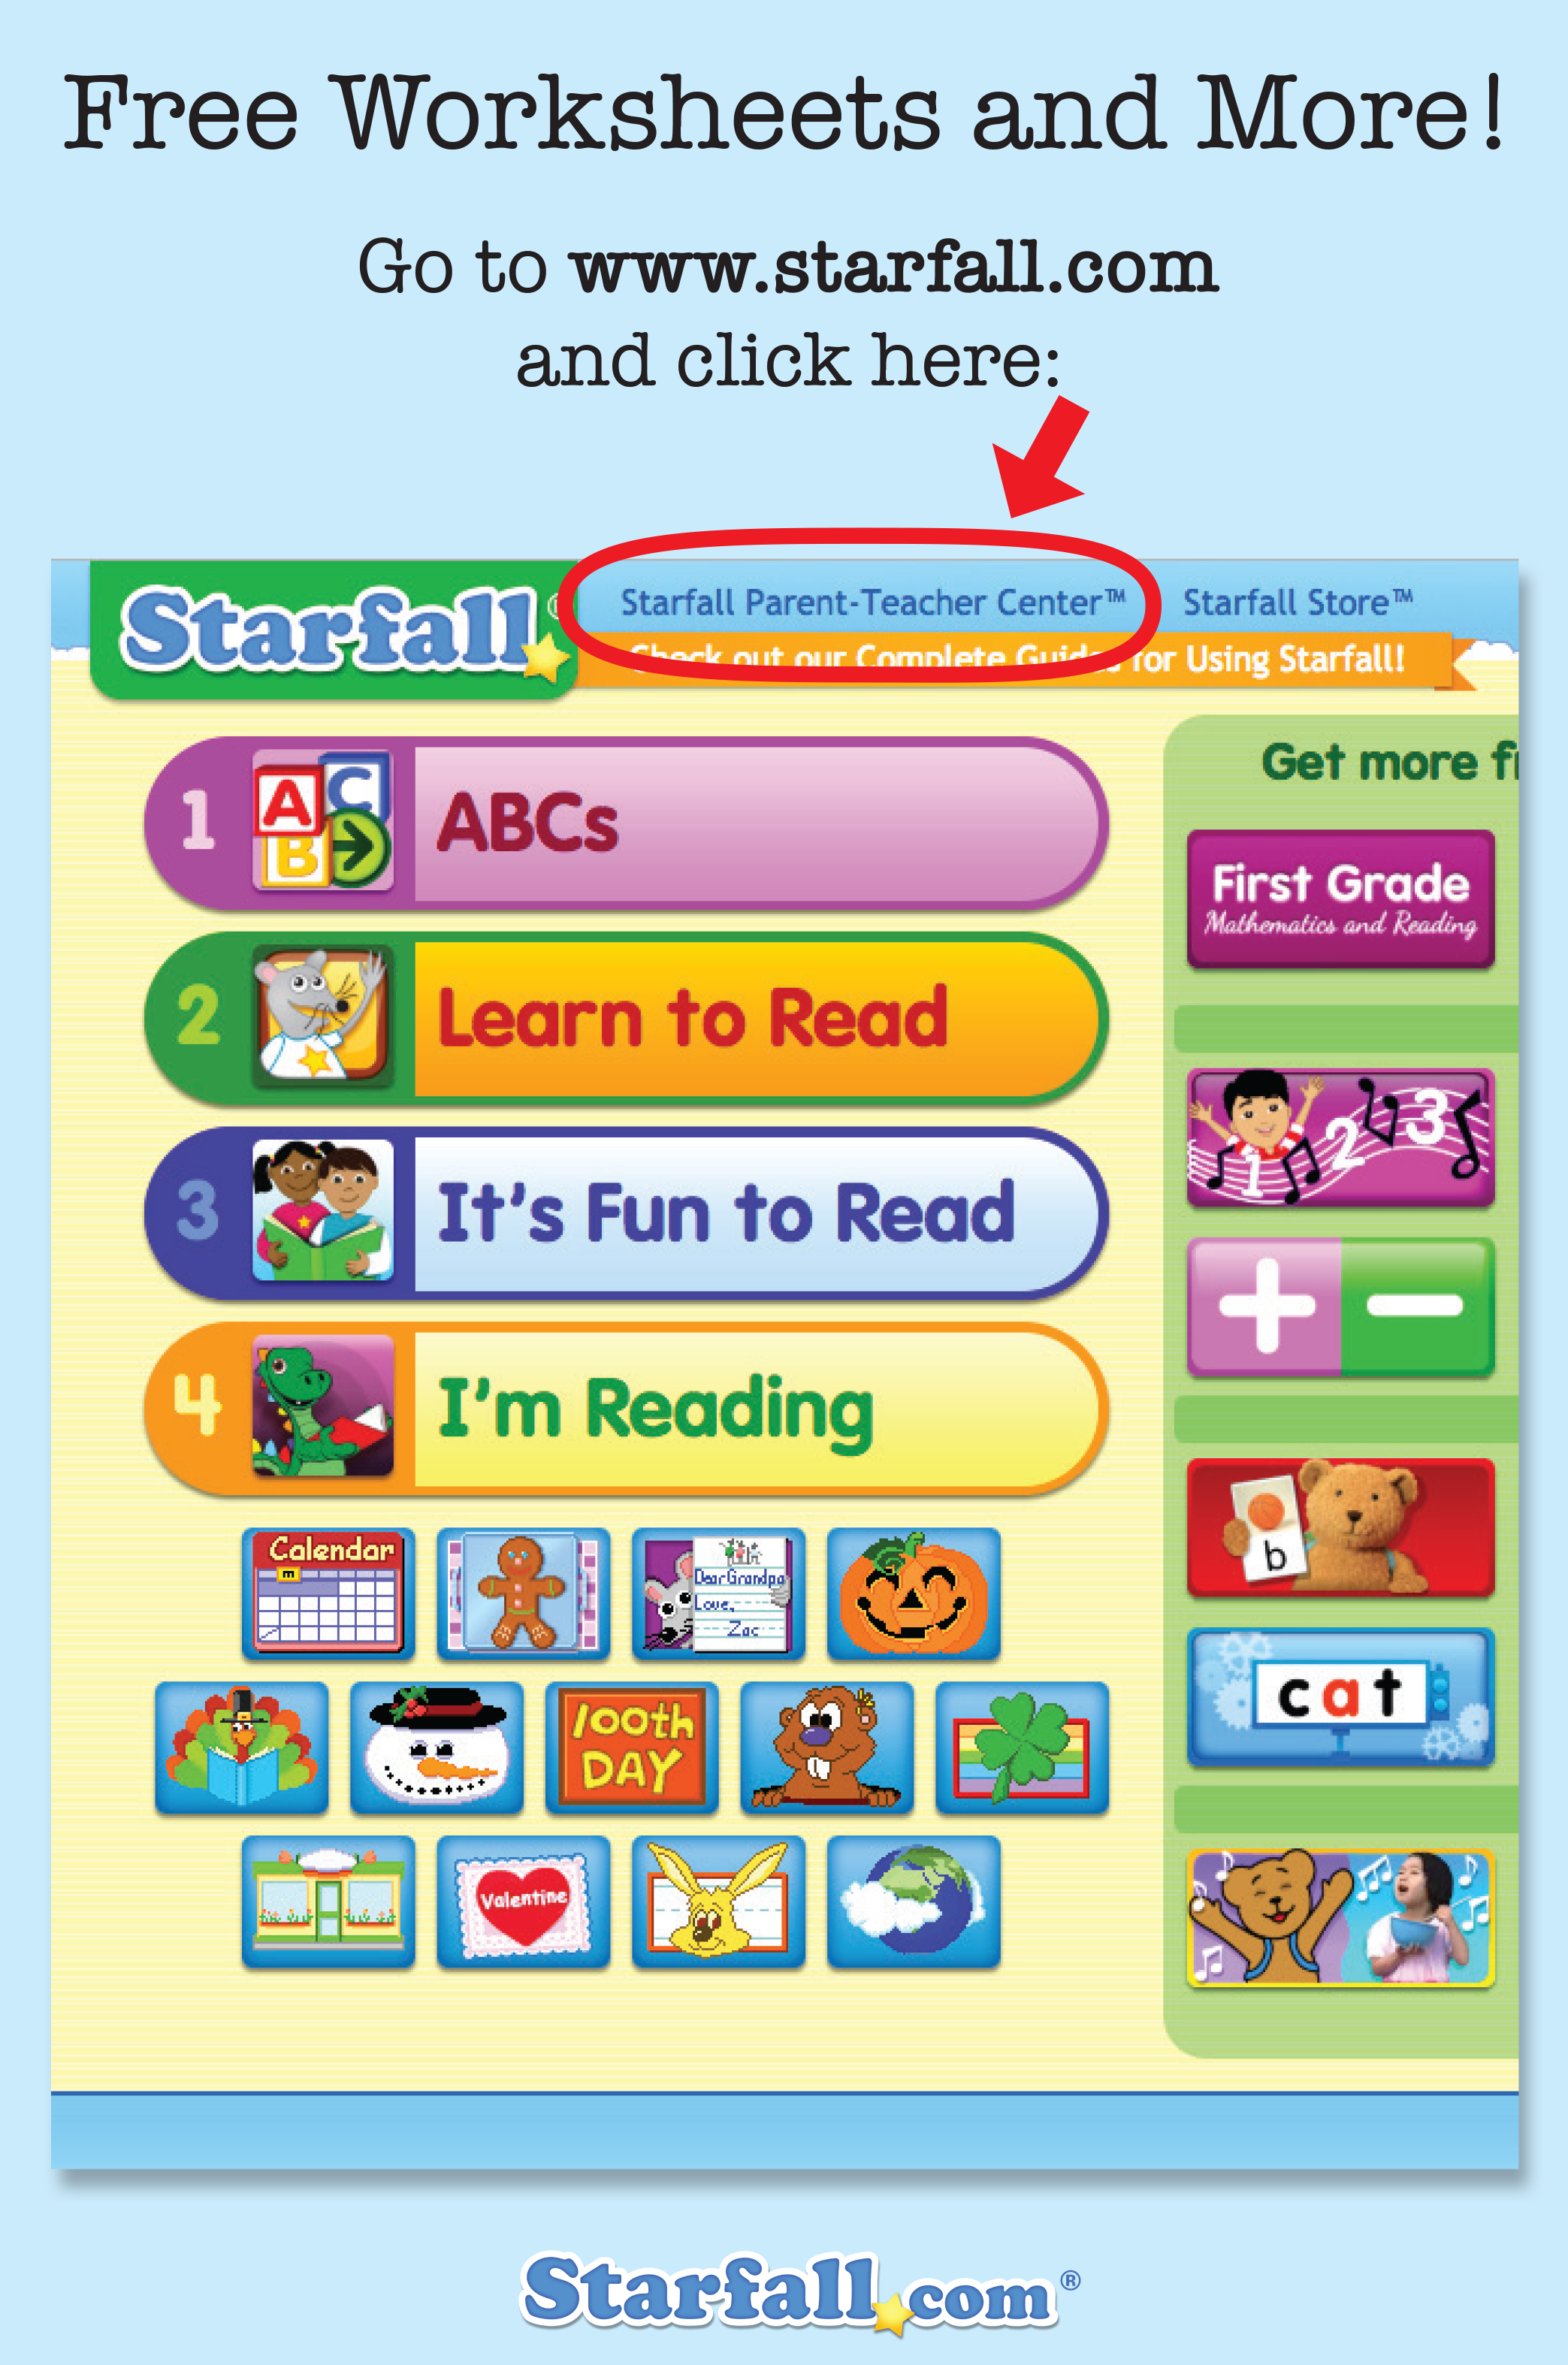 Worksheets Starfall Worksheets did you know that starfalls parent teacher center is completely free and don